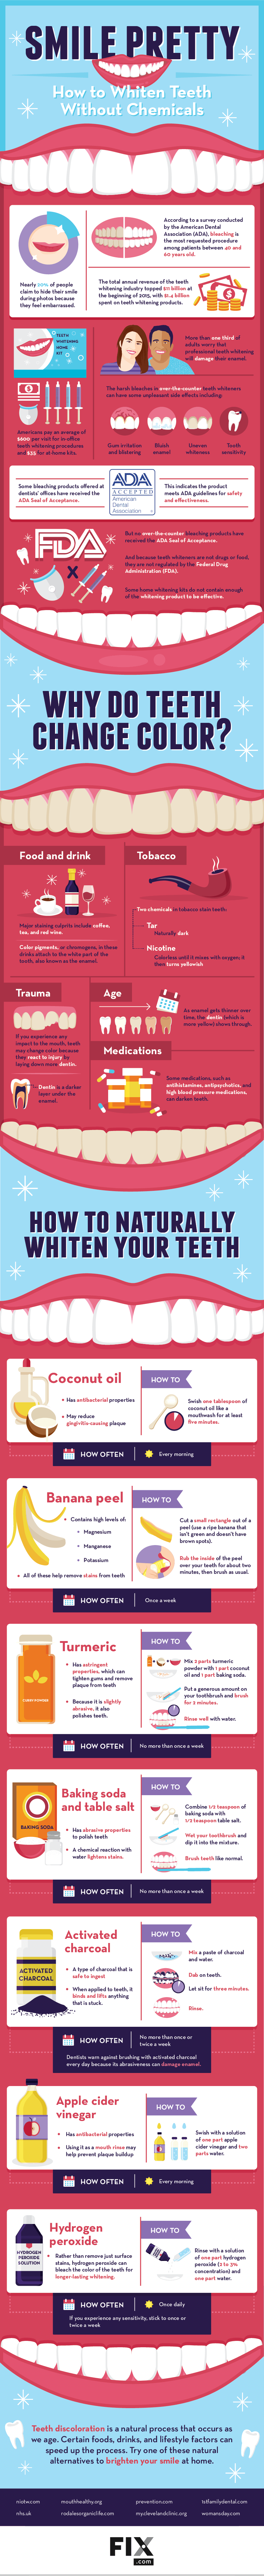 Smile Pretty How To Whiten Teeth Without The Chemicals Your Body